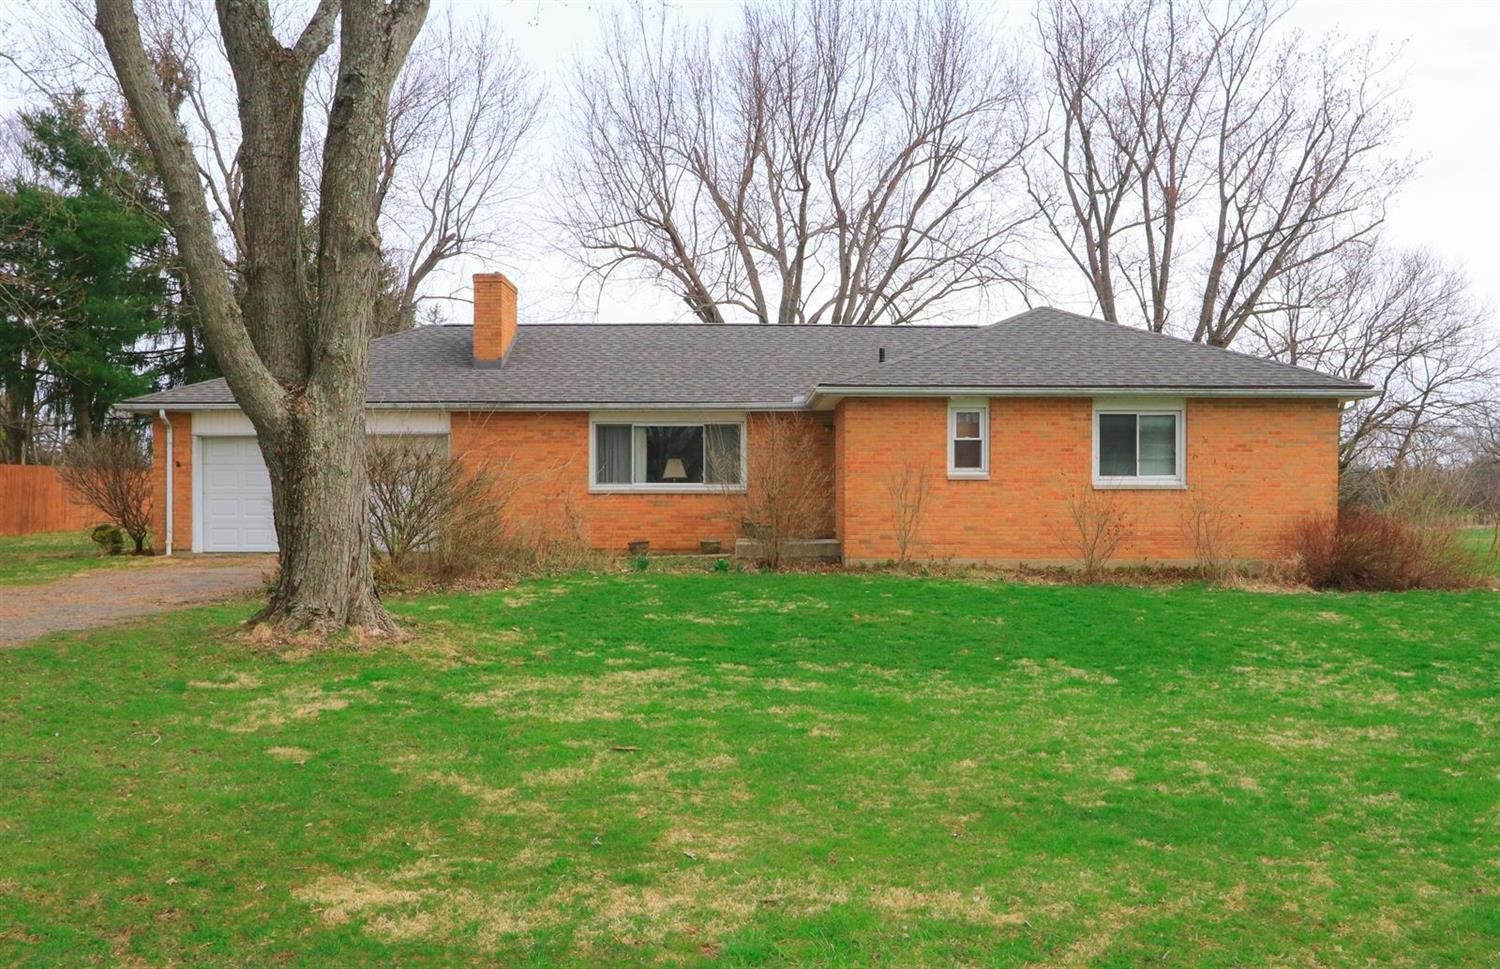 Property for sale at 8286 E St Rt 73, Massie Twp,  Ohio 45068